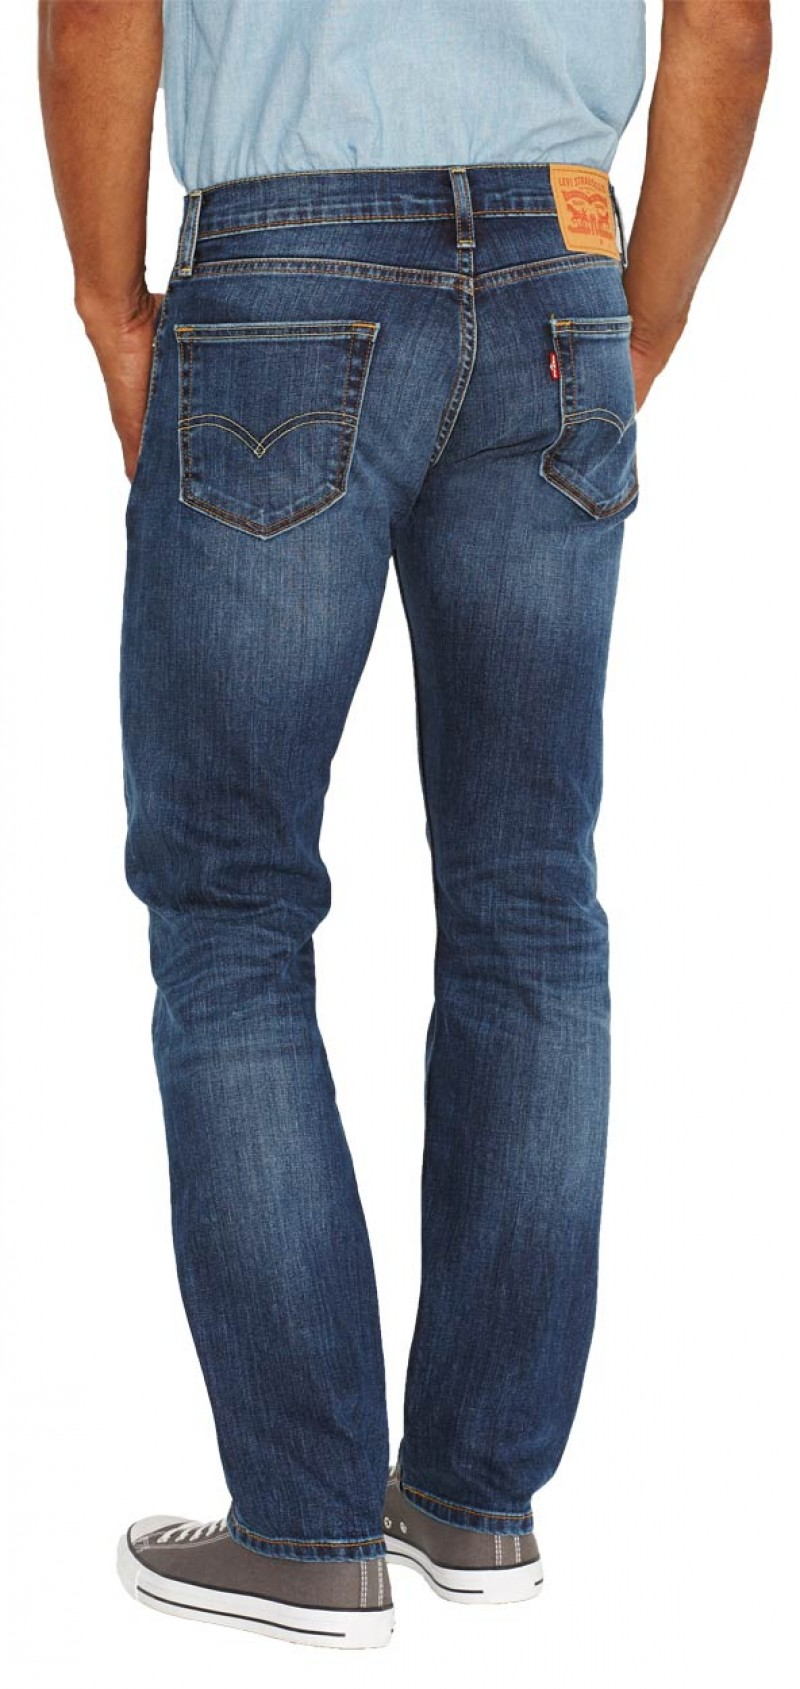 Levis 504 Jeans - Straight Leg - Cloudy